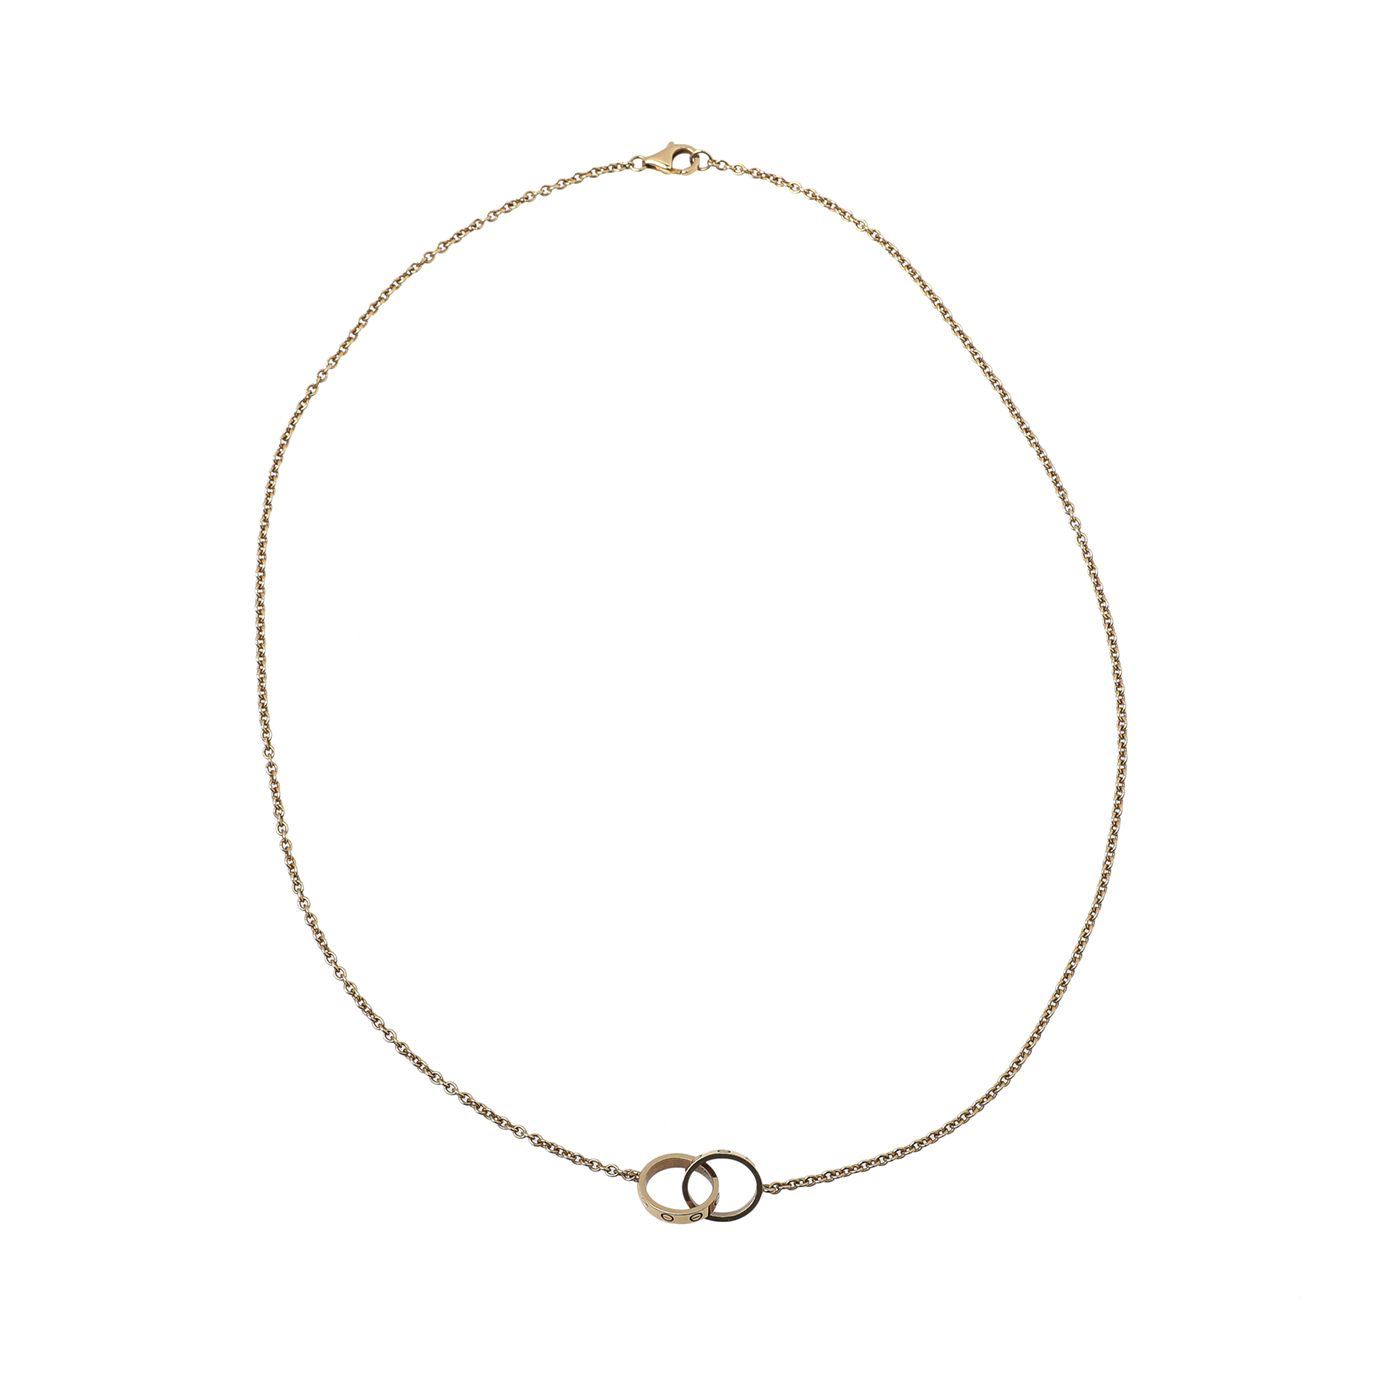 Cartier 18K Yellow Gold Love 2 Hoops Chain Necklace